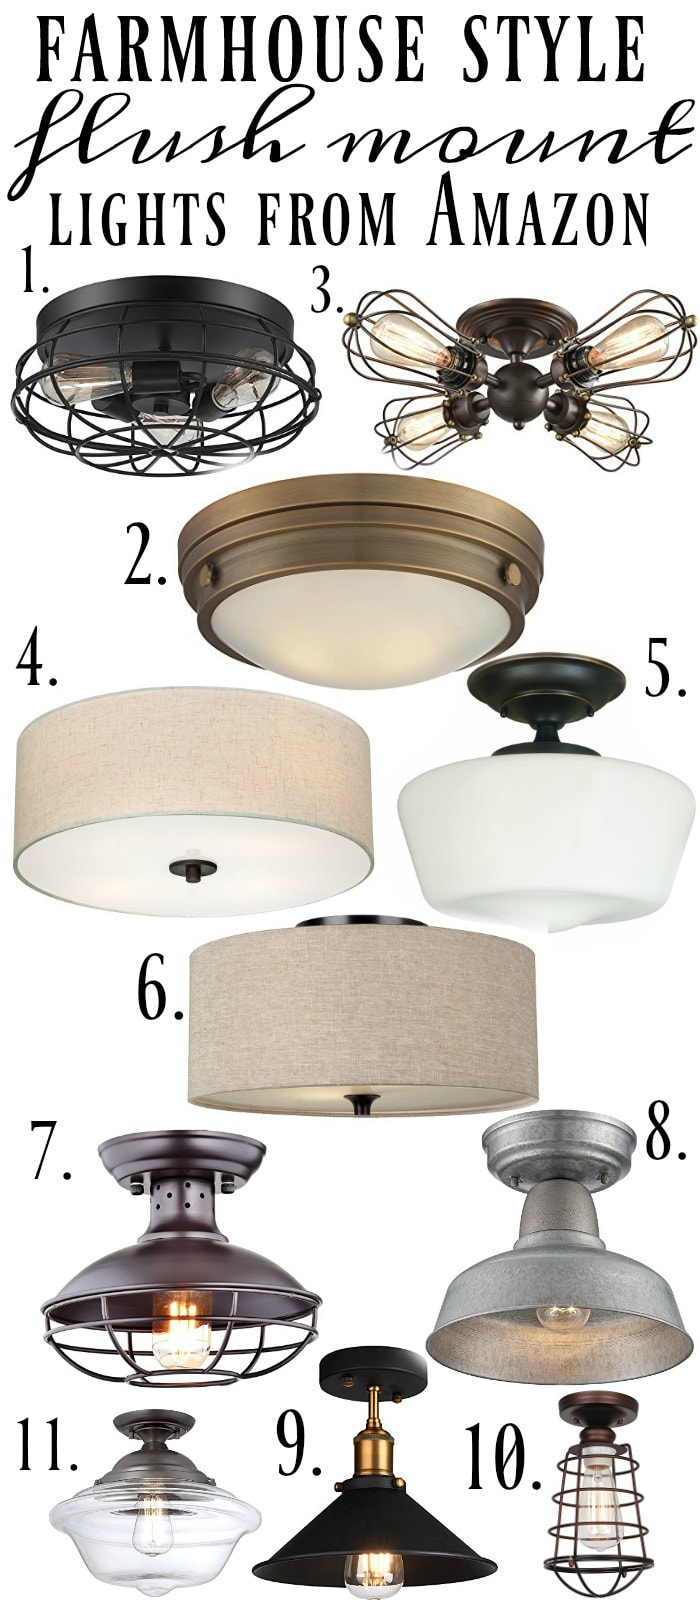 Farmhouse Style Flush Mount Lights HERE